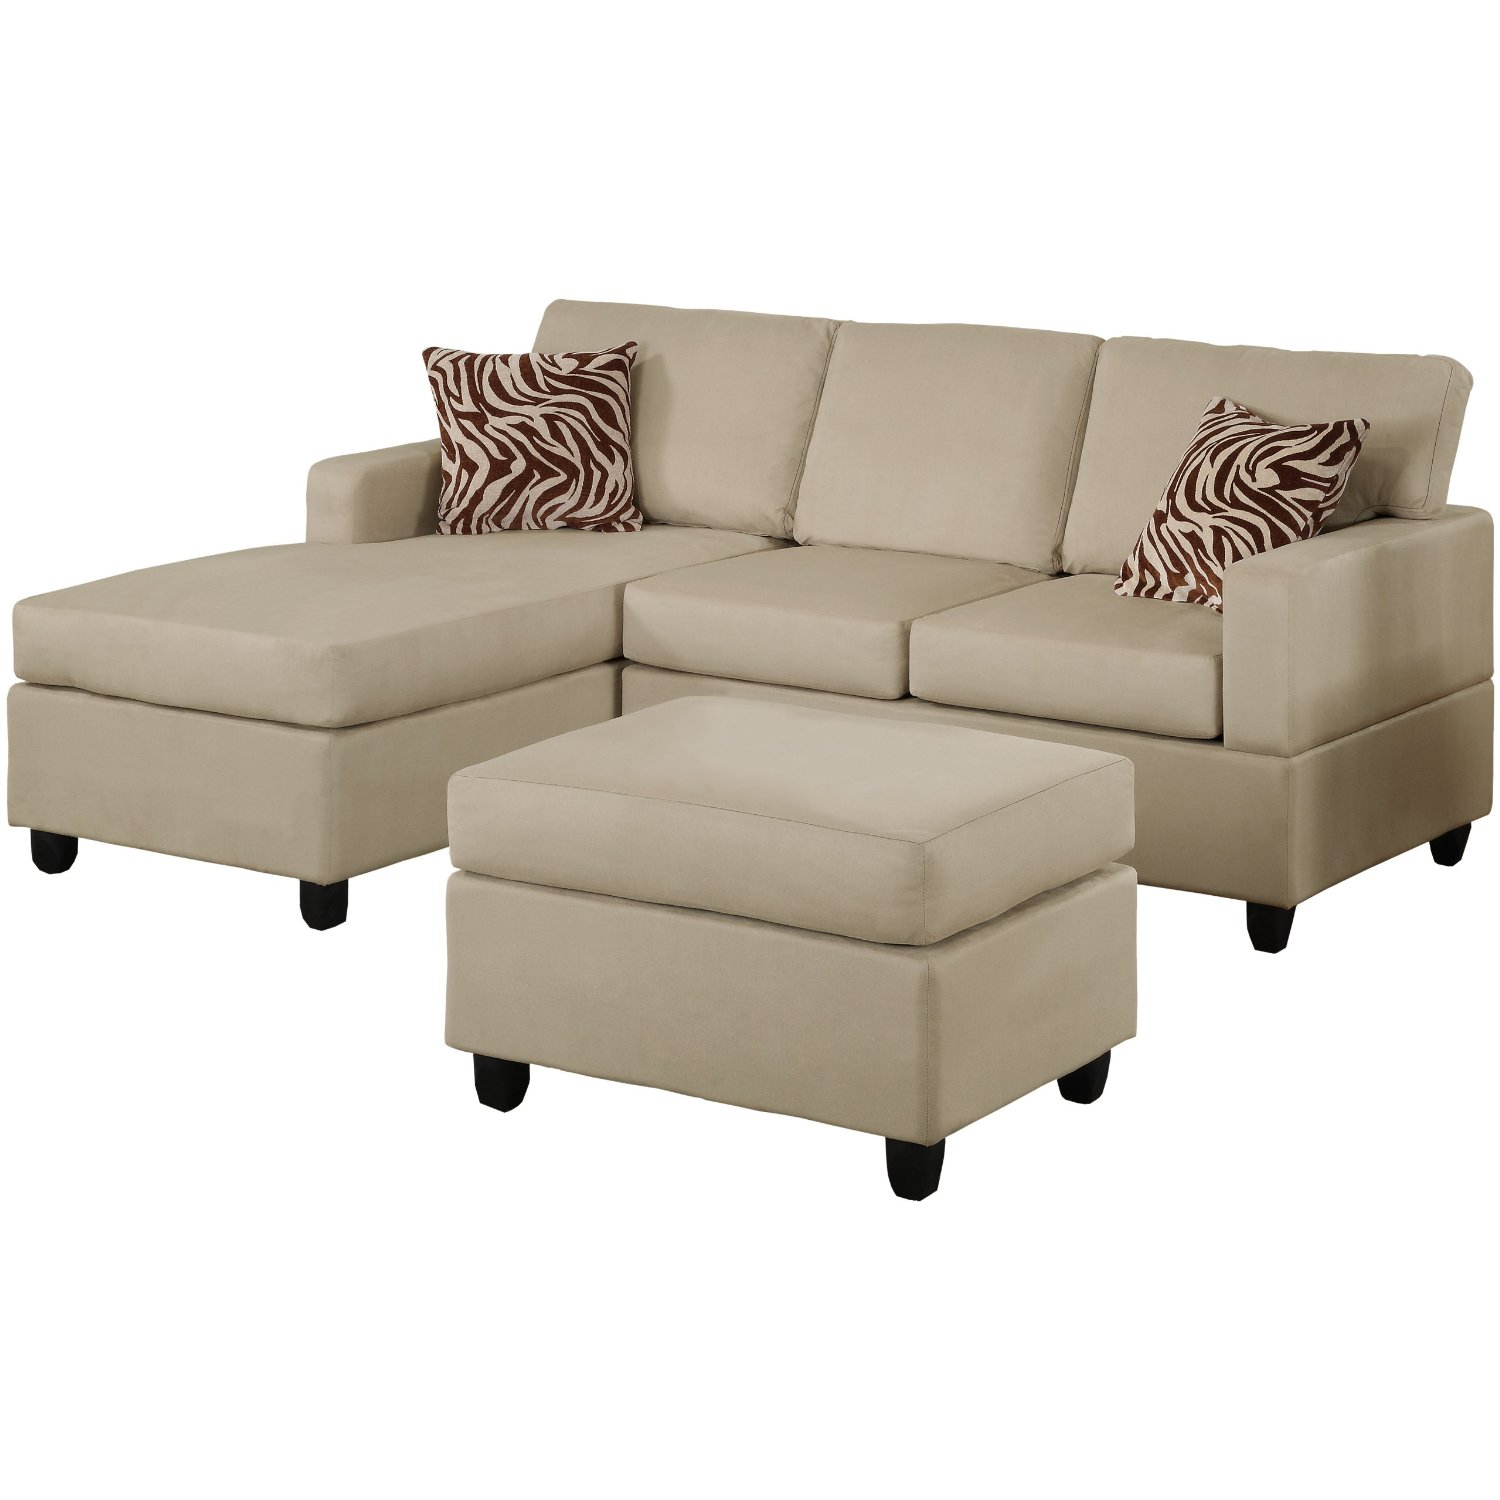 Low couch prices where to shop for cheap furniture for Good and cheap furniture stores